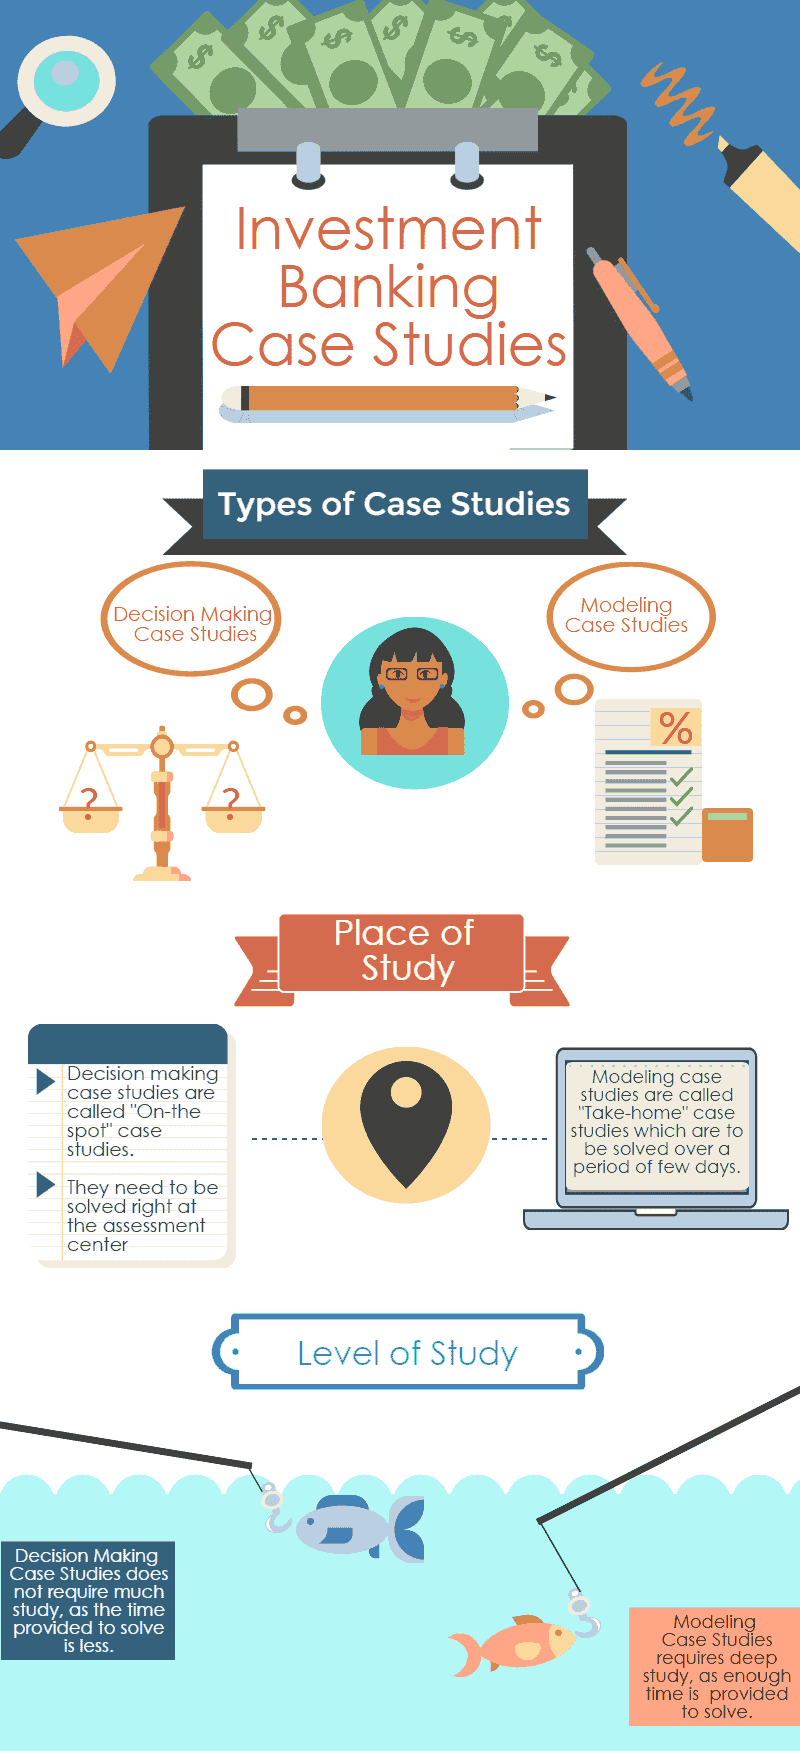 Investment banking case studies